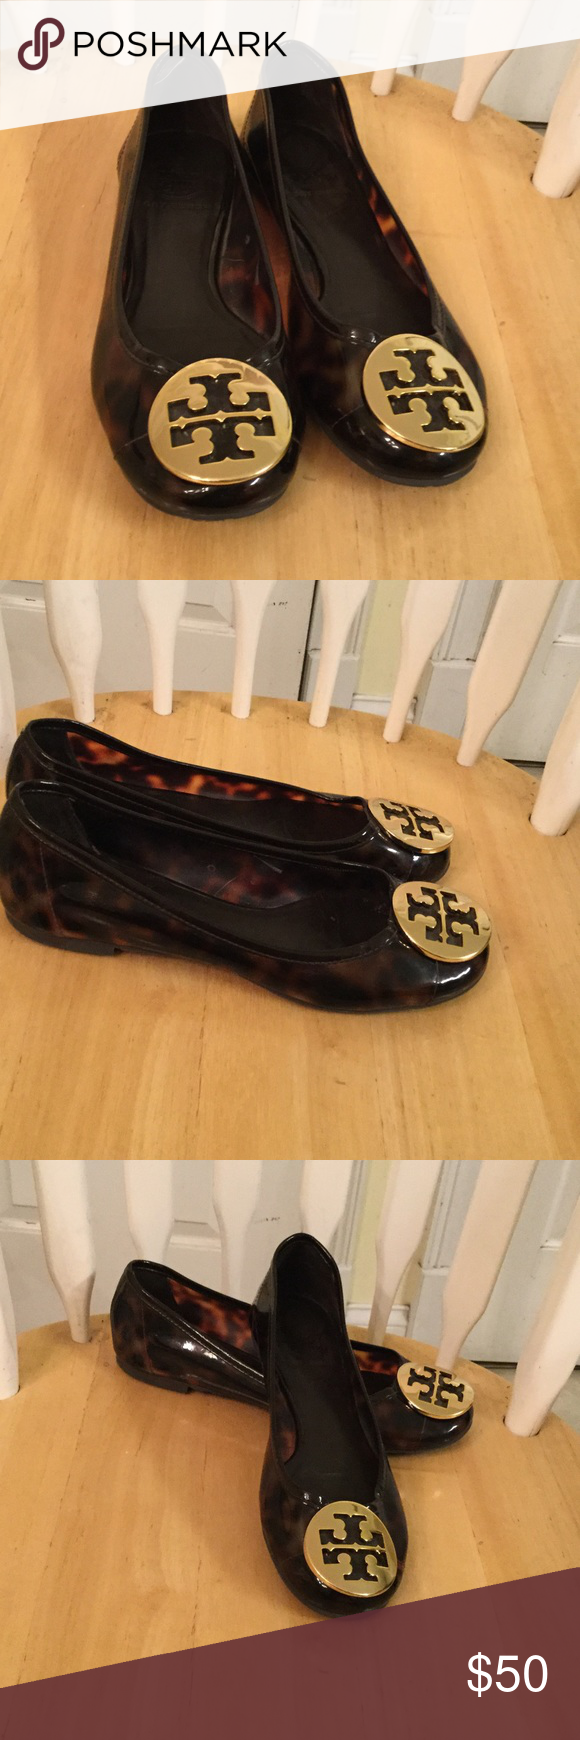 Tory Burch shoes Tory burch brown plastic flats great condition used a few times  Tory Burch